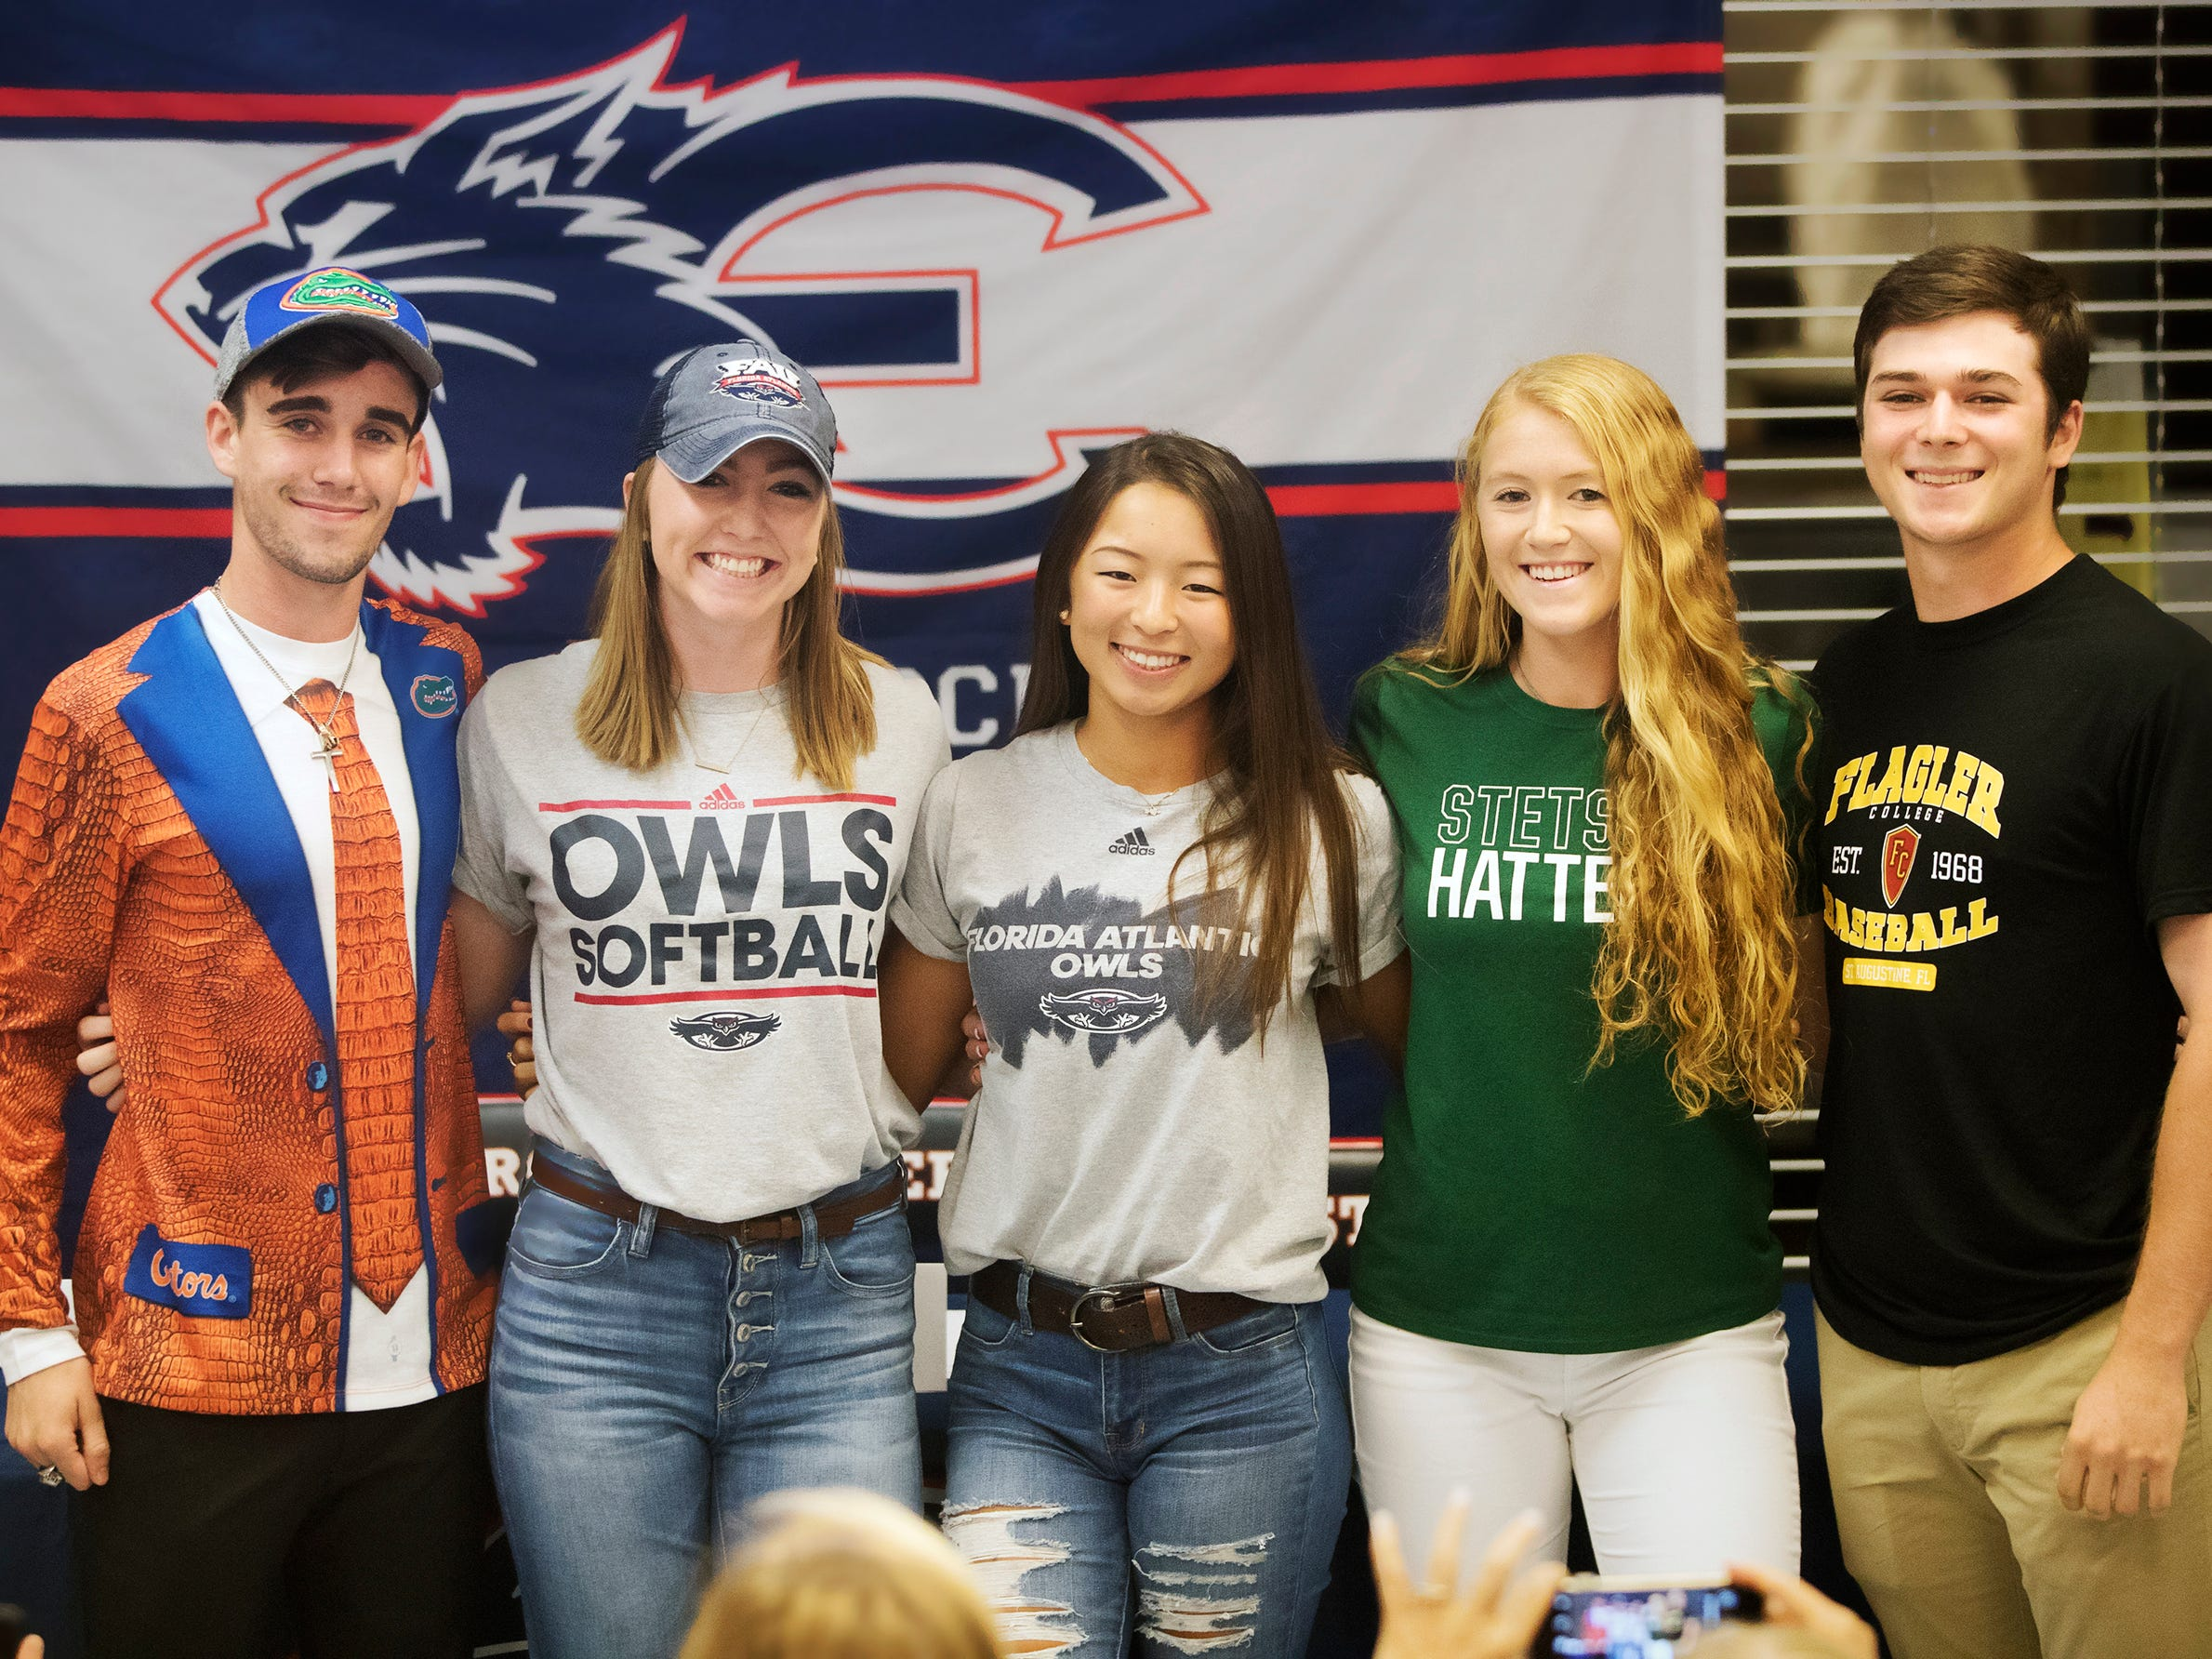 Estero High School athletes Hugh Brittenham, left, Riley Ennis, Kim Egozi, Margaret Struble and Jack Mckee signed letters of intent recently during a National Signing Day event at Estero High School. Brittenham will run track at the University of Florida. Ennis will play softball at Florida Atlantic University. Egozi will play golf at Florida Atlantic University. McKee will play baseball at Flagler College.